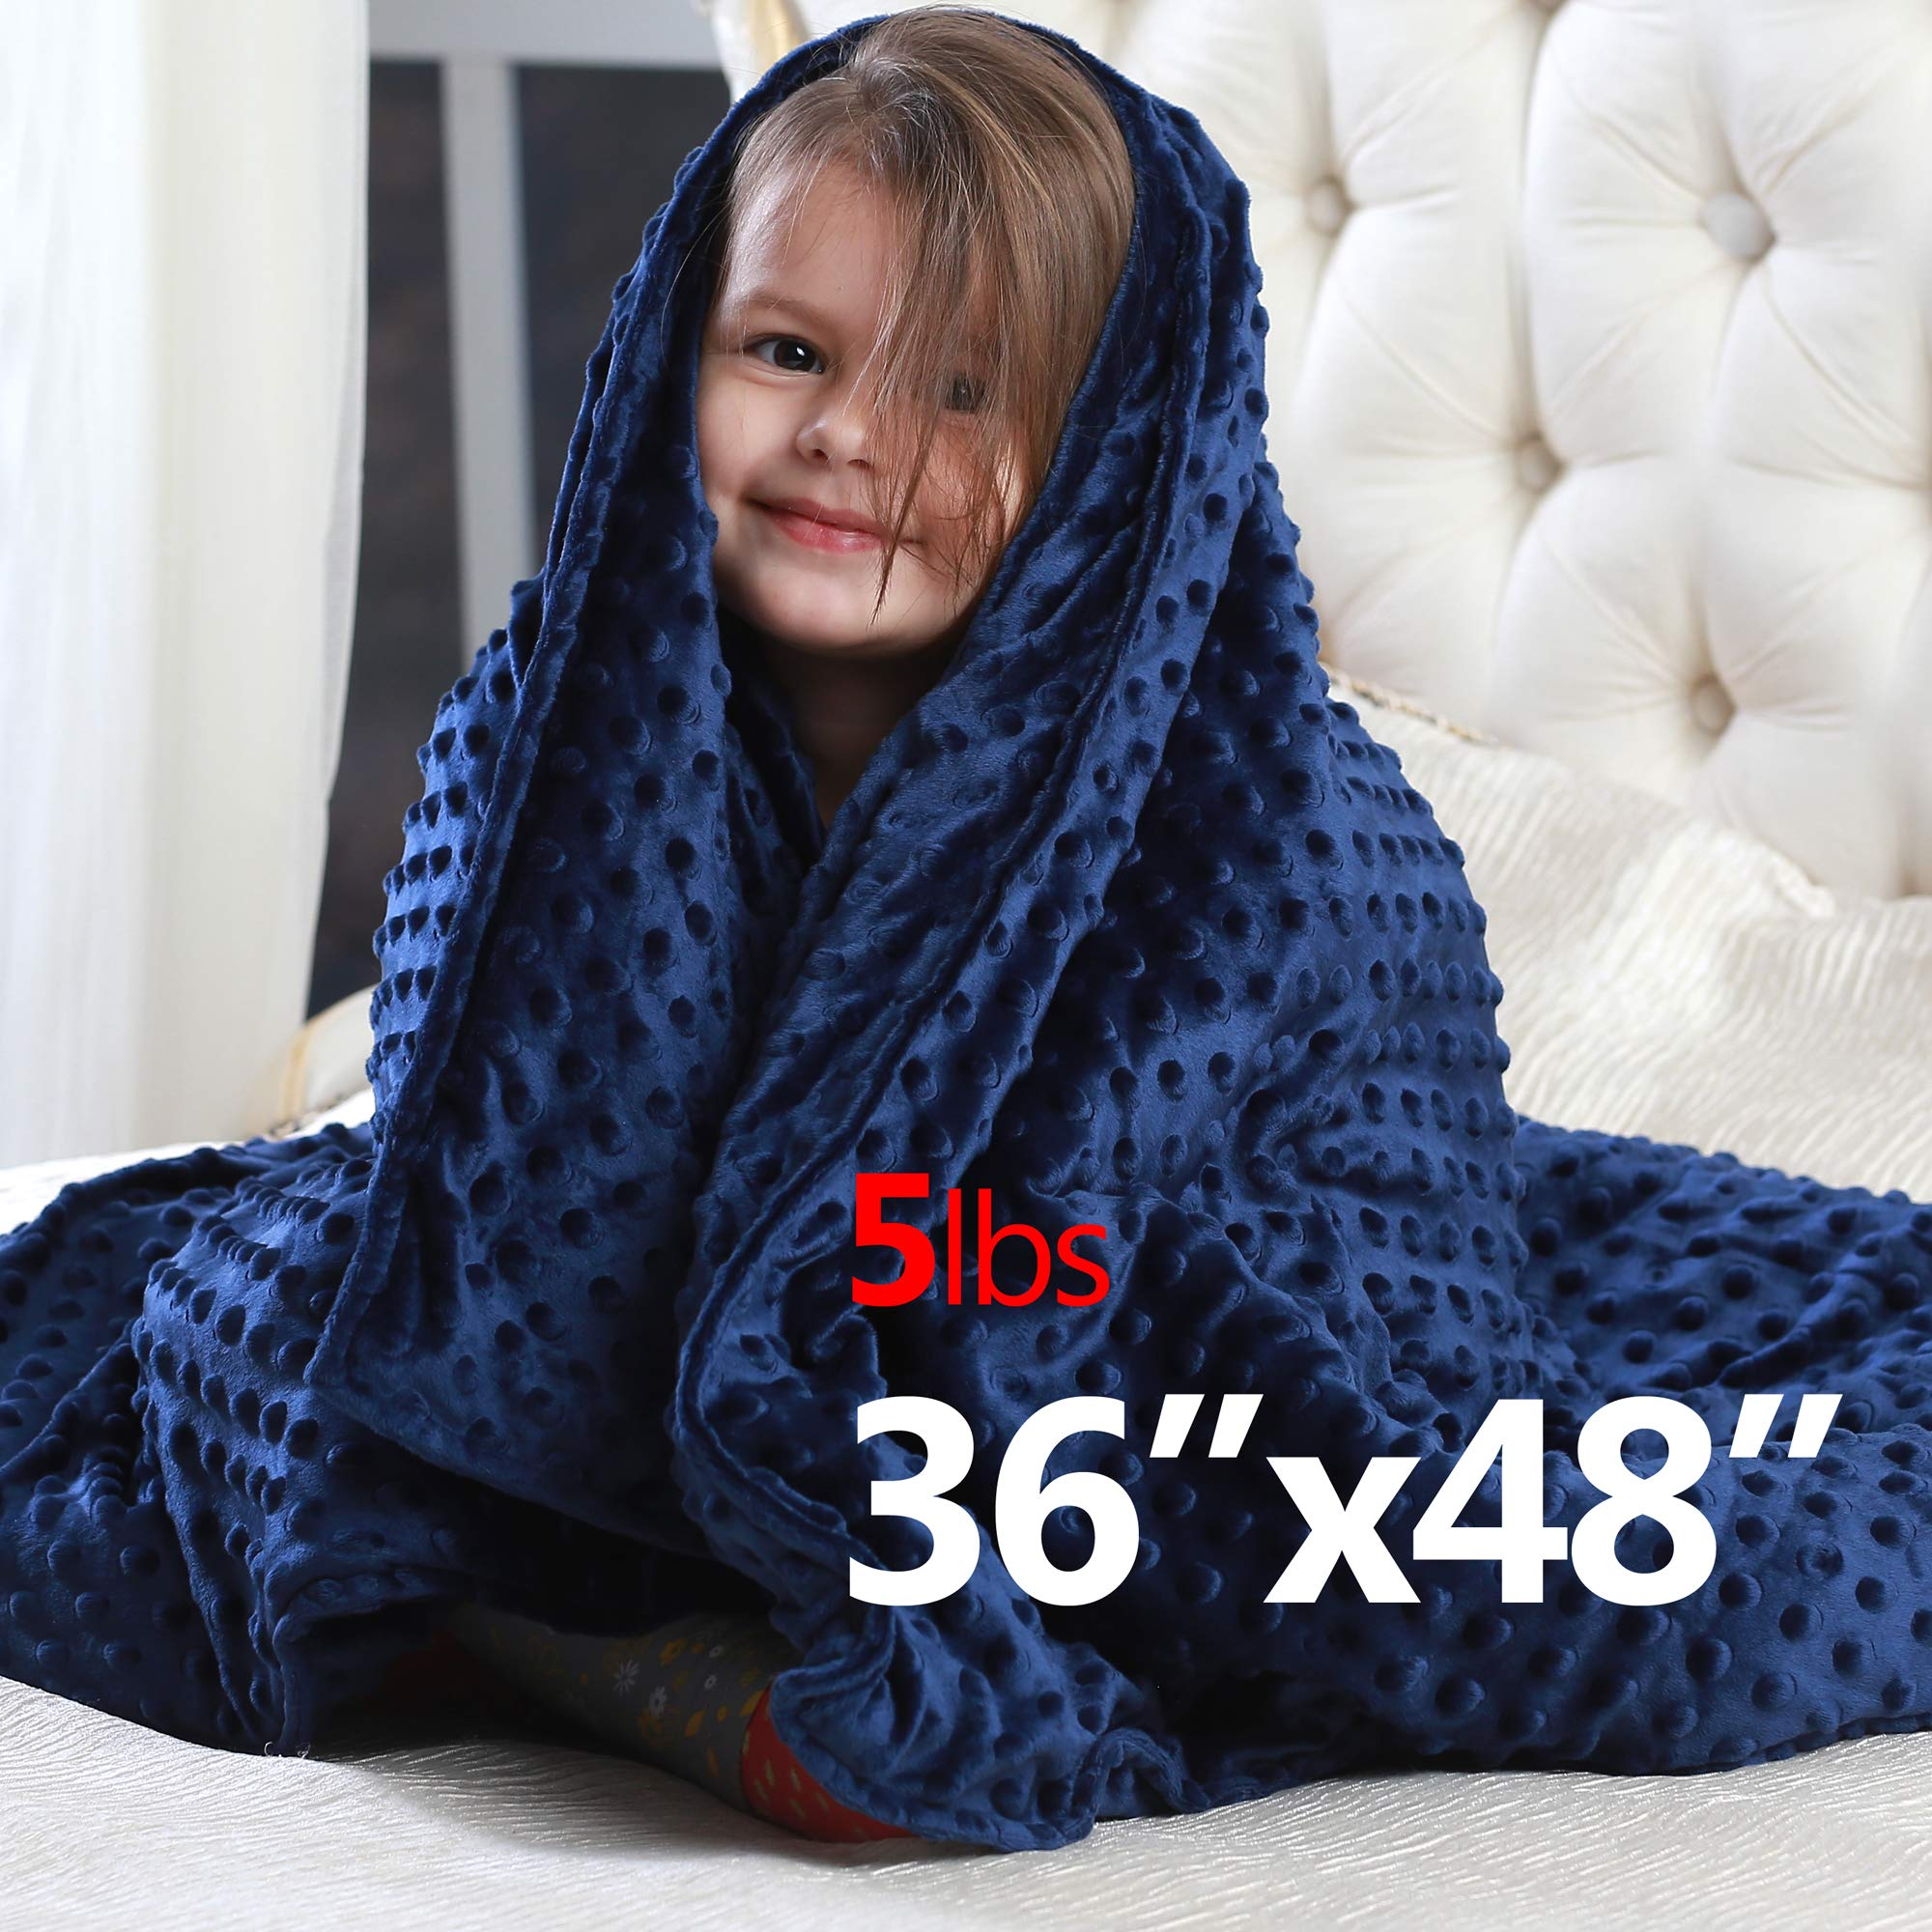 Weighted Blanket for Kids 5 Pounds - Childrens Toddler Heavy Blanket with Removable Cover (36 inches x 48 inches) by Gravaria (Image #7)